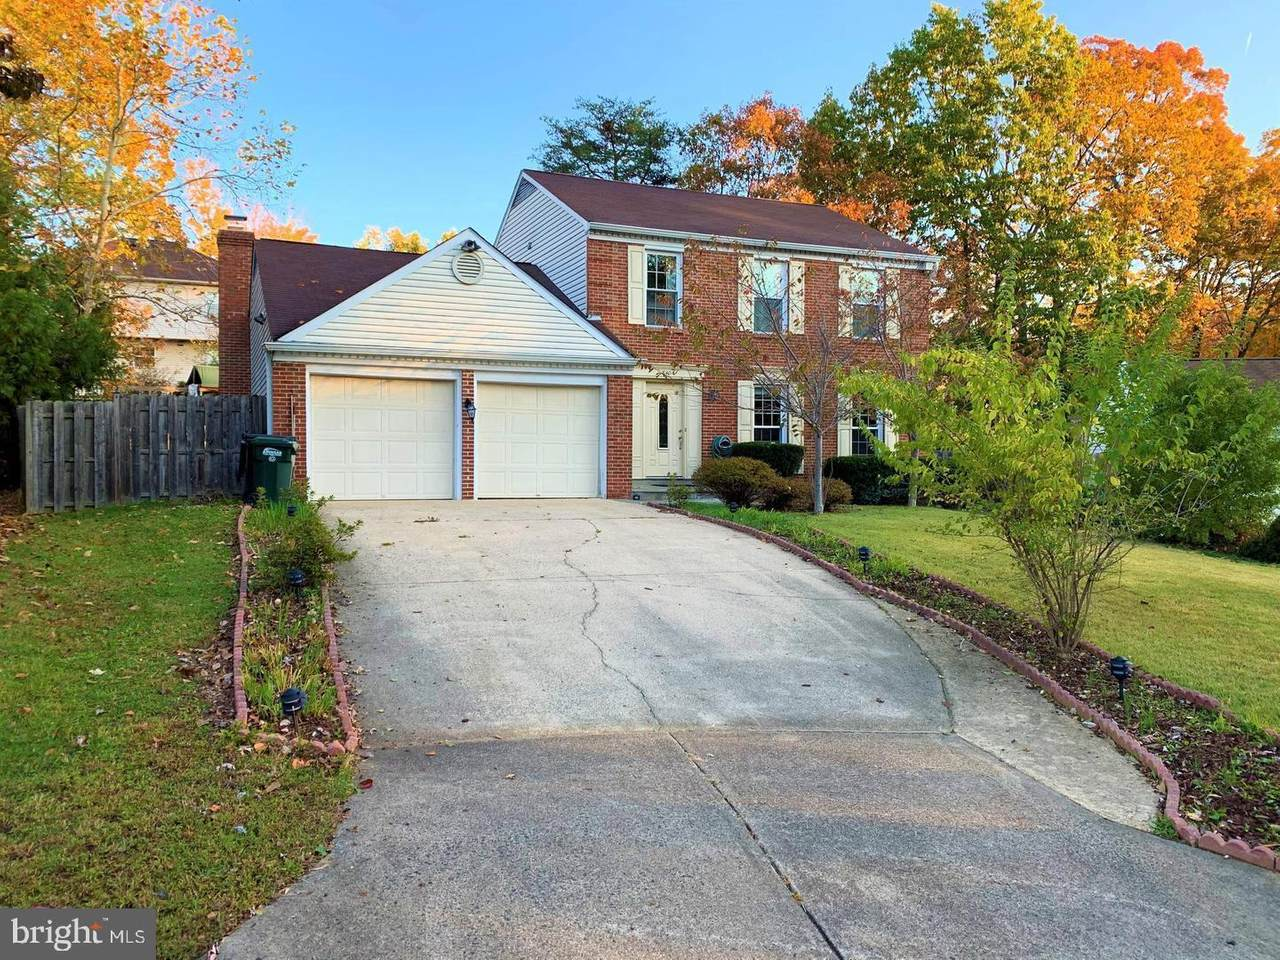 8404 Hunt Valley Drive - Photo 1